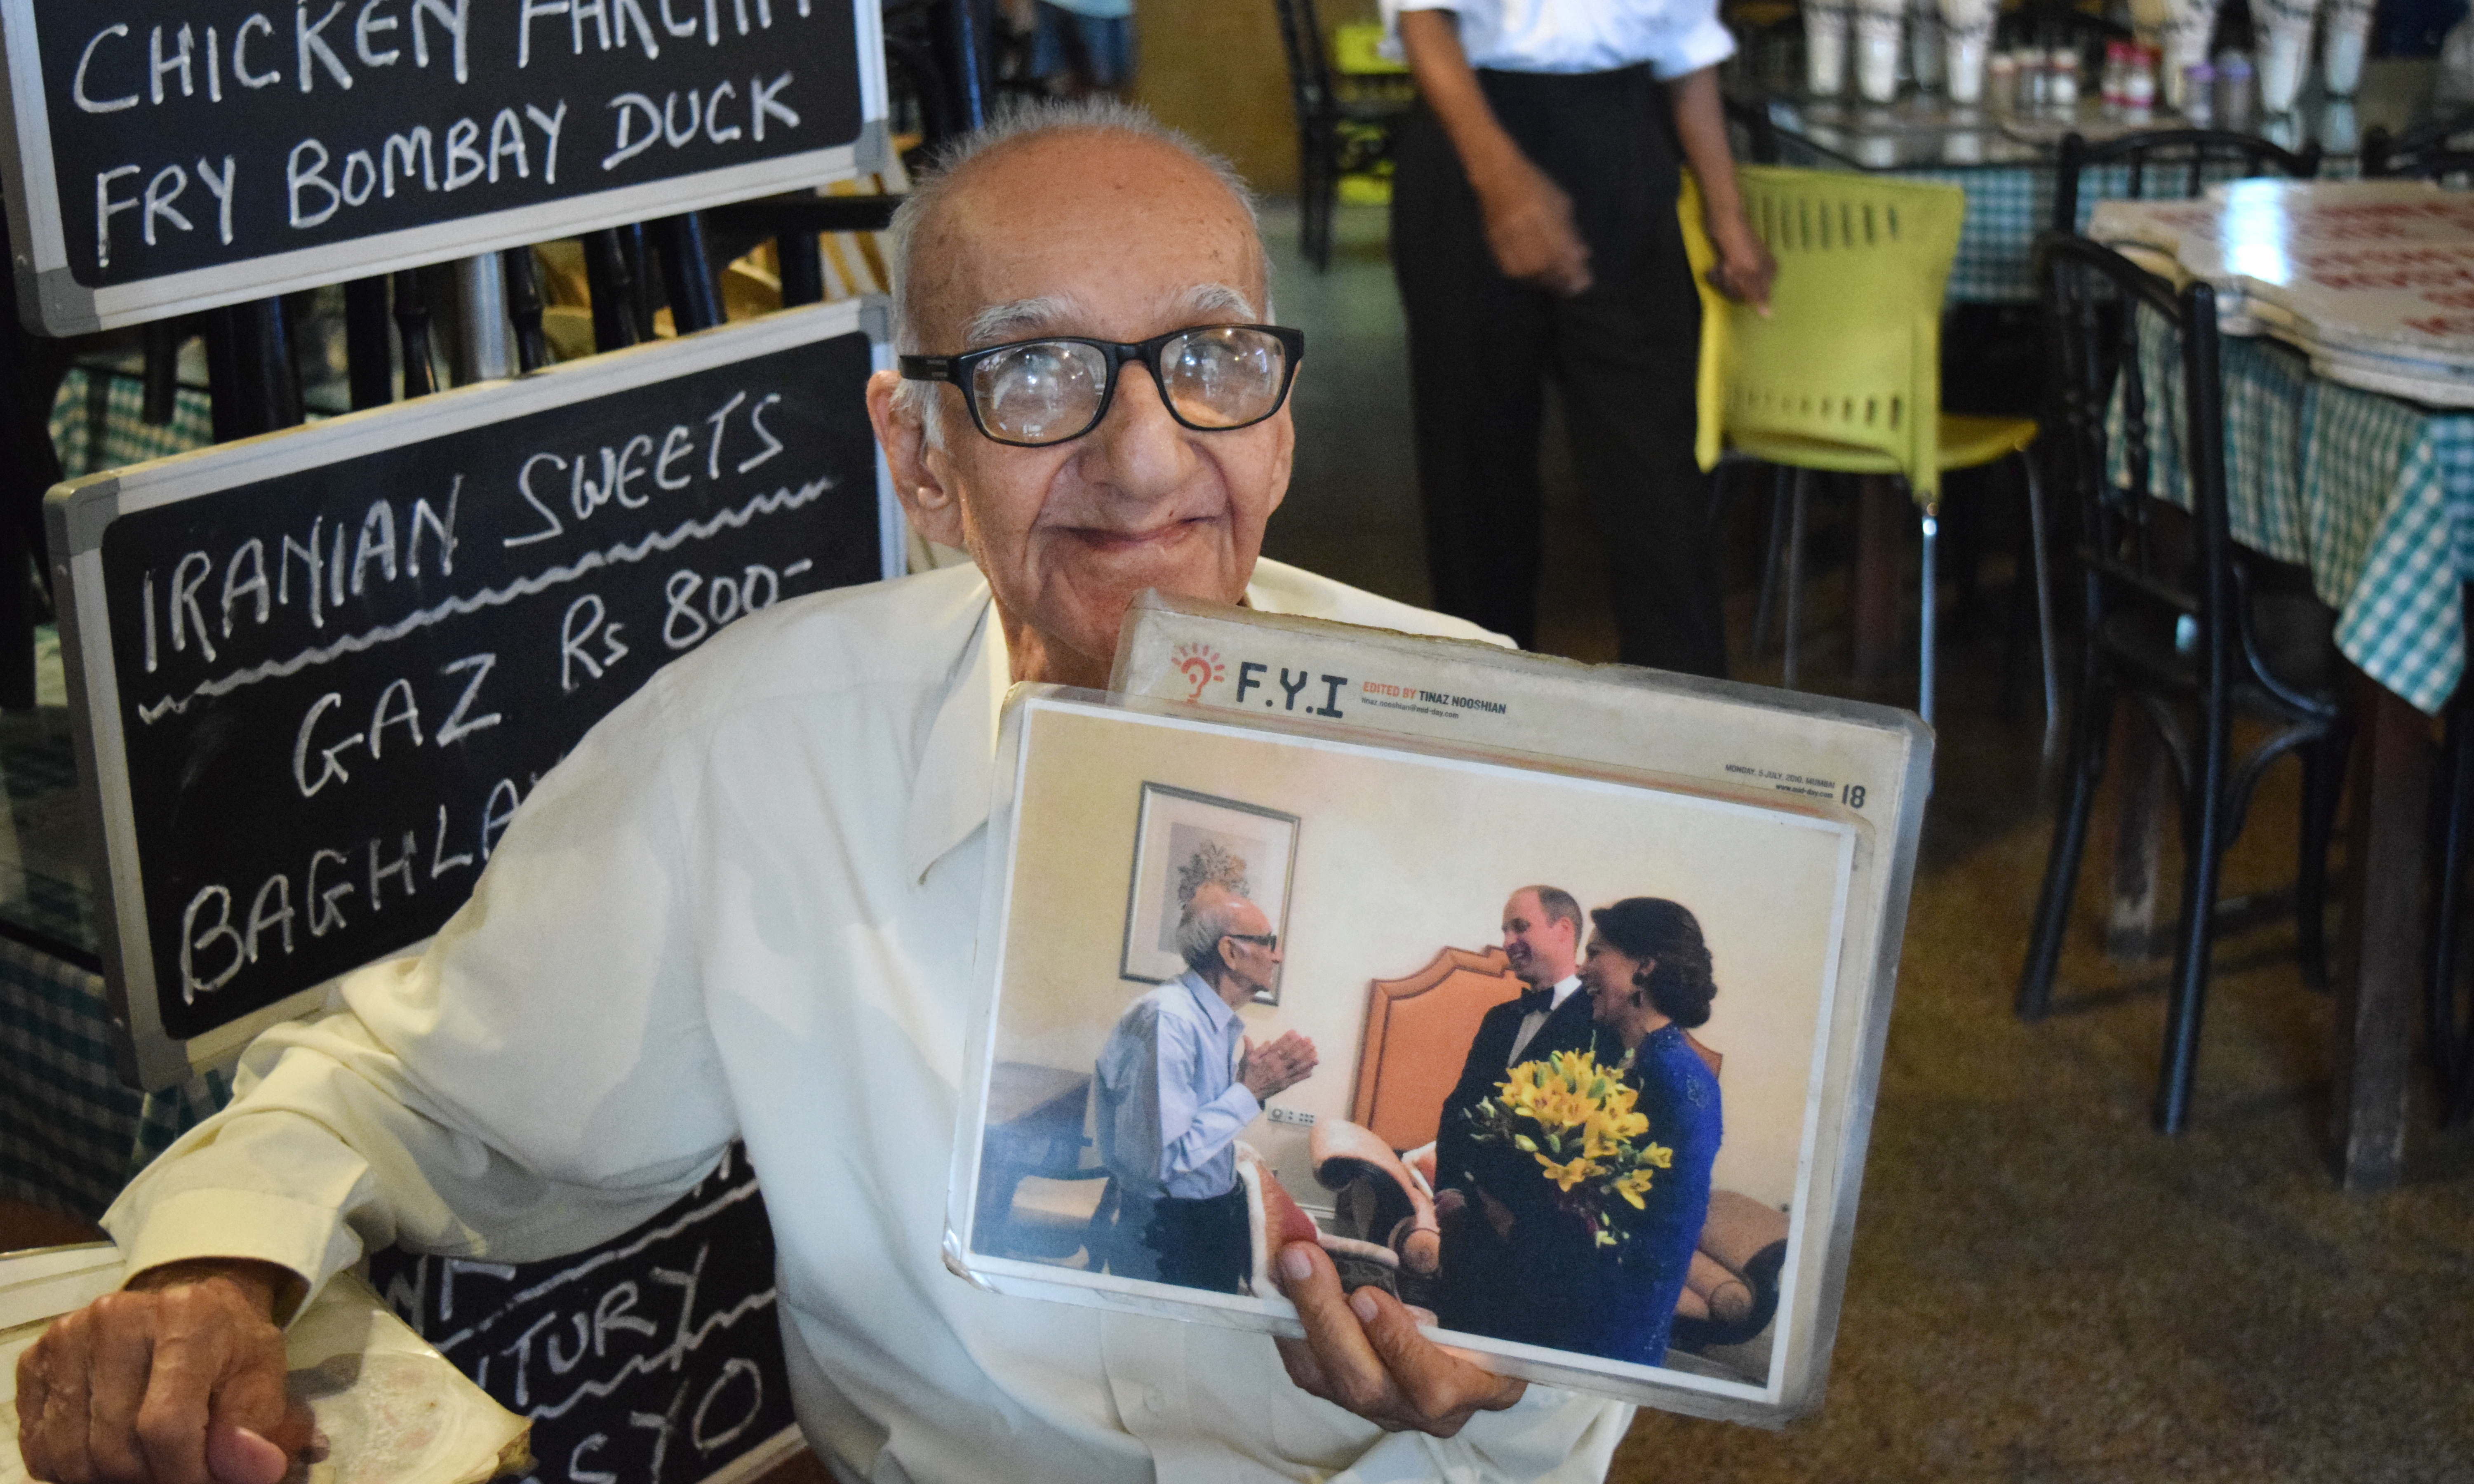 Boman Kohinoor, 97, has spent the past eight decades committed to his beloved Britannia & Co., one of Mumbai's last Parsi cafes. Here, he proudly holds up a photo of himself with two members of the British royal family: the Duke and Duchess of Cambridge, Prince William and the former Kate Middleton. (Rebecca Rosman for NPR)